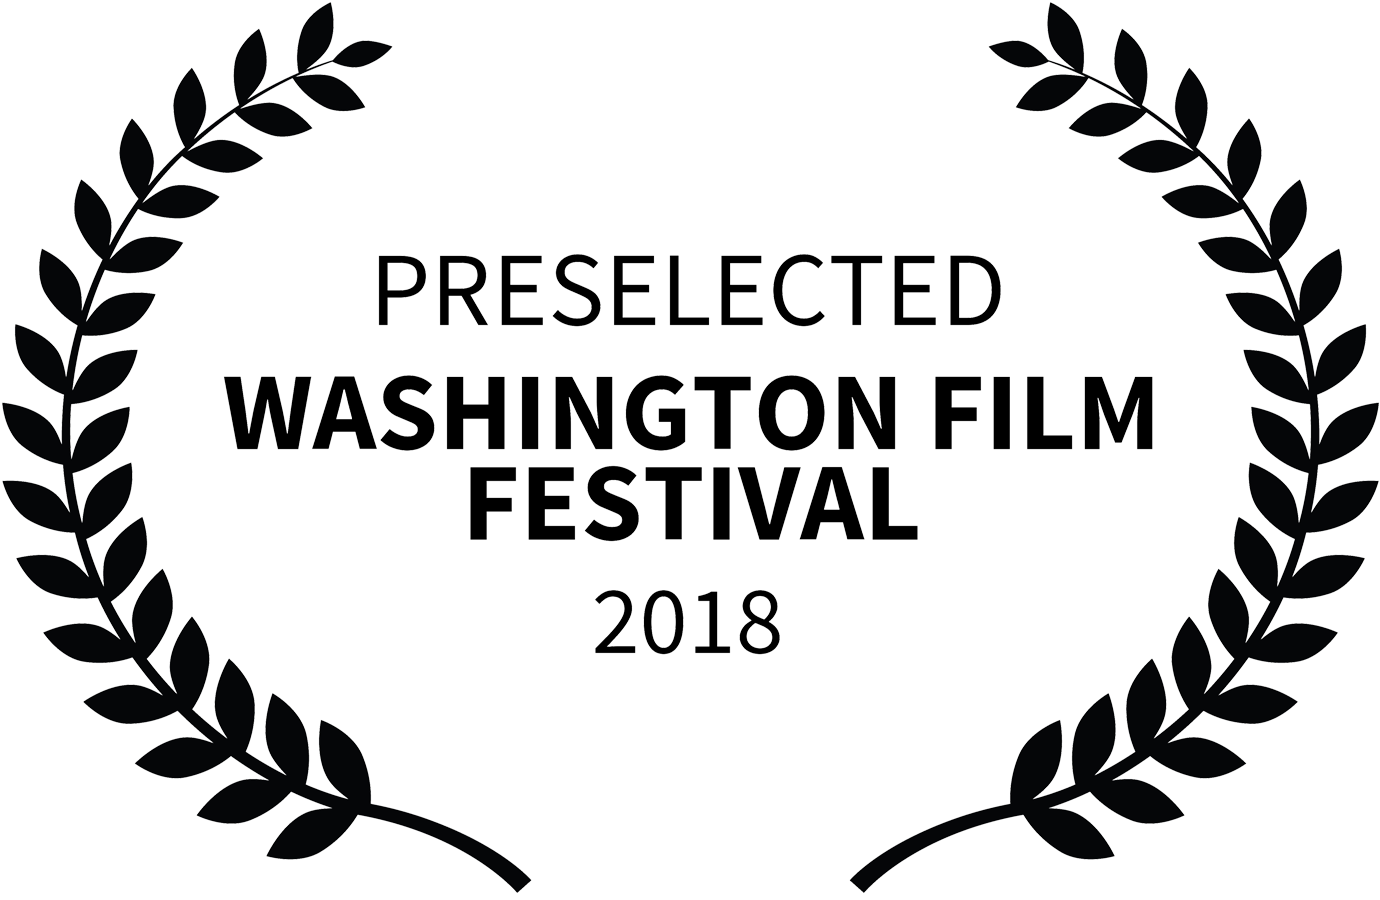 Sofia Wellman - Whats Love Got To Do With It - Film by Sofia Wellman - Washington Film Festival - Preselected - 2018